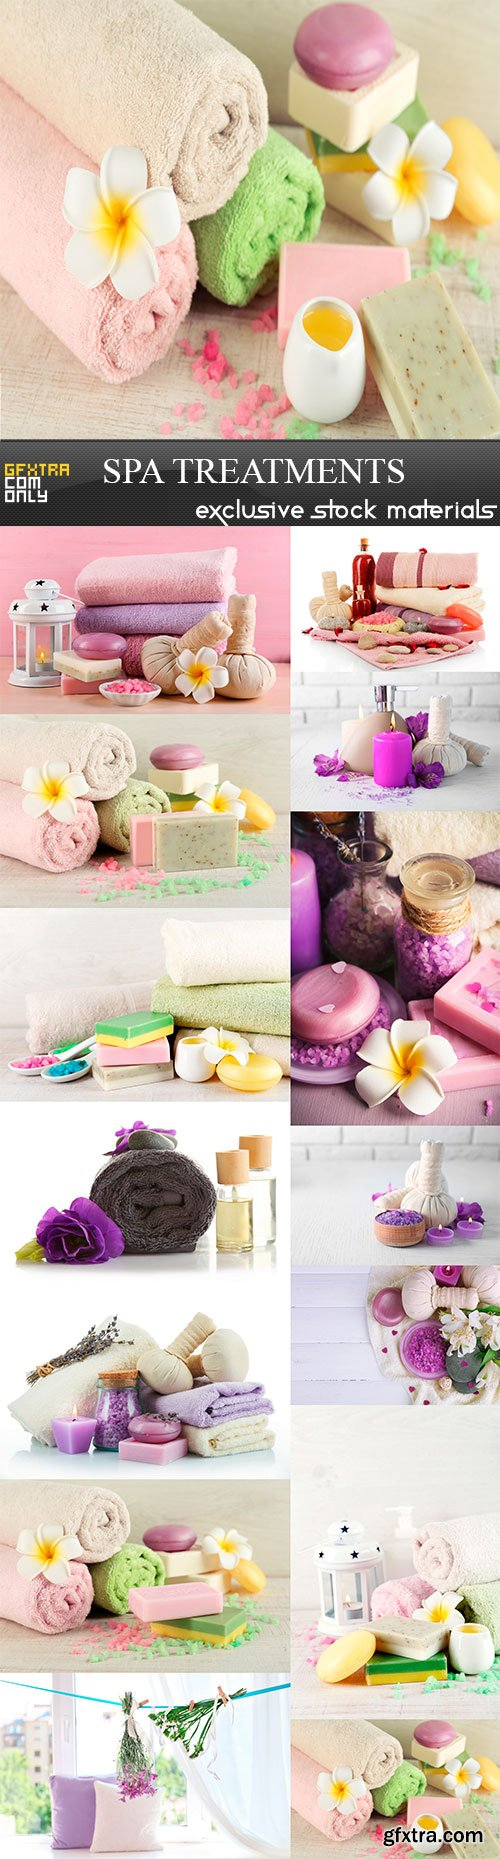 Spa treatments, 14 x UHQ JPEG